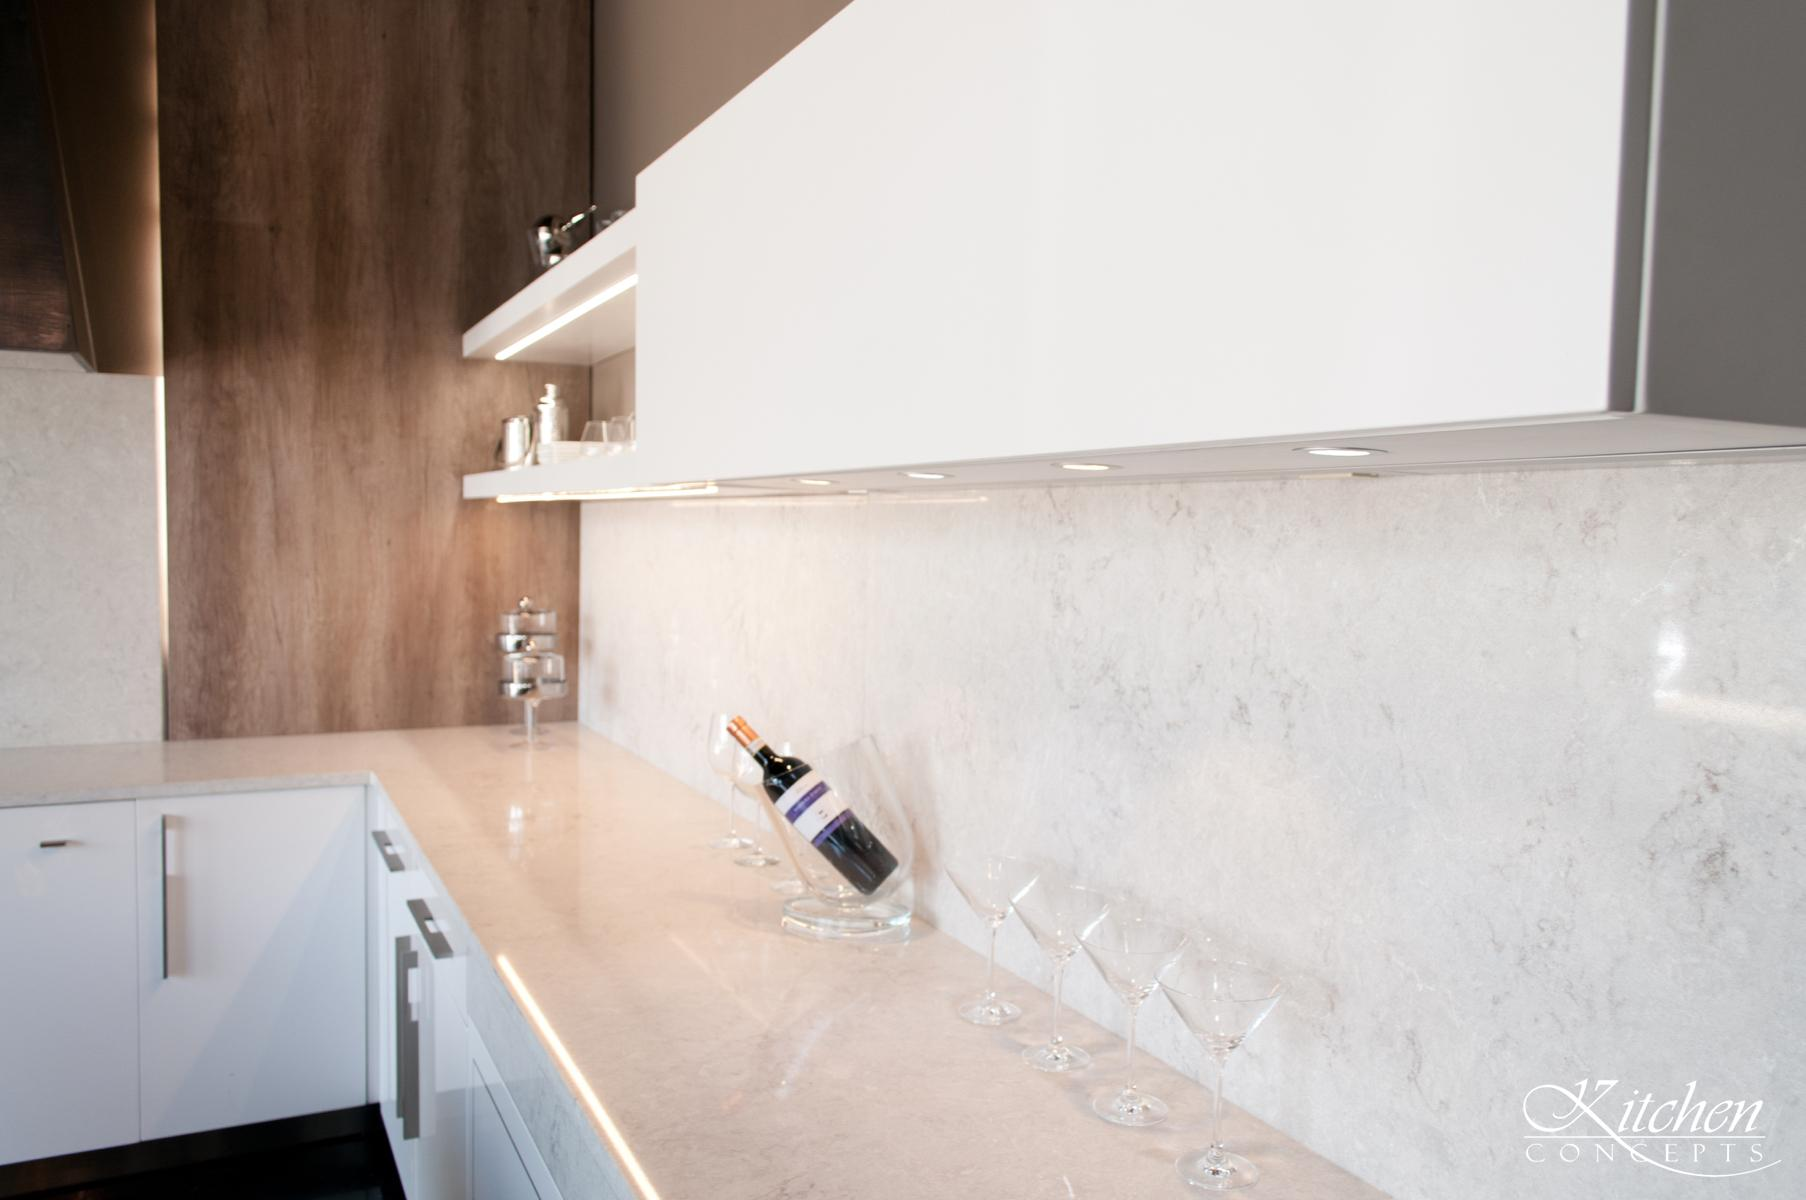 Minimal Nest Kitchen with White Counter and Cabinets - Kitchen Concepts